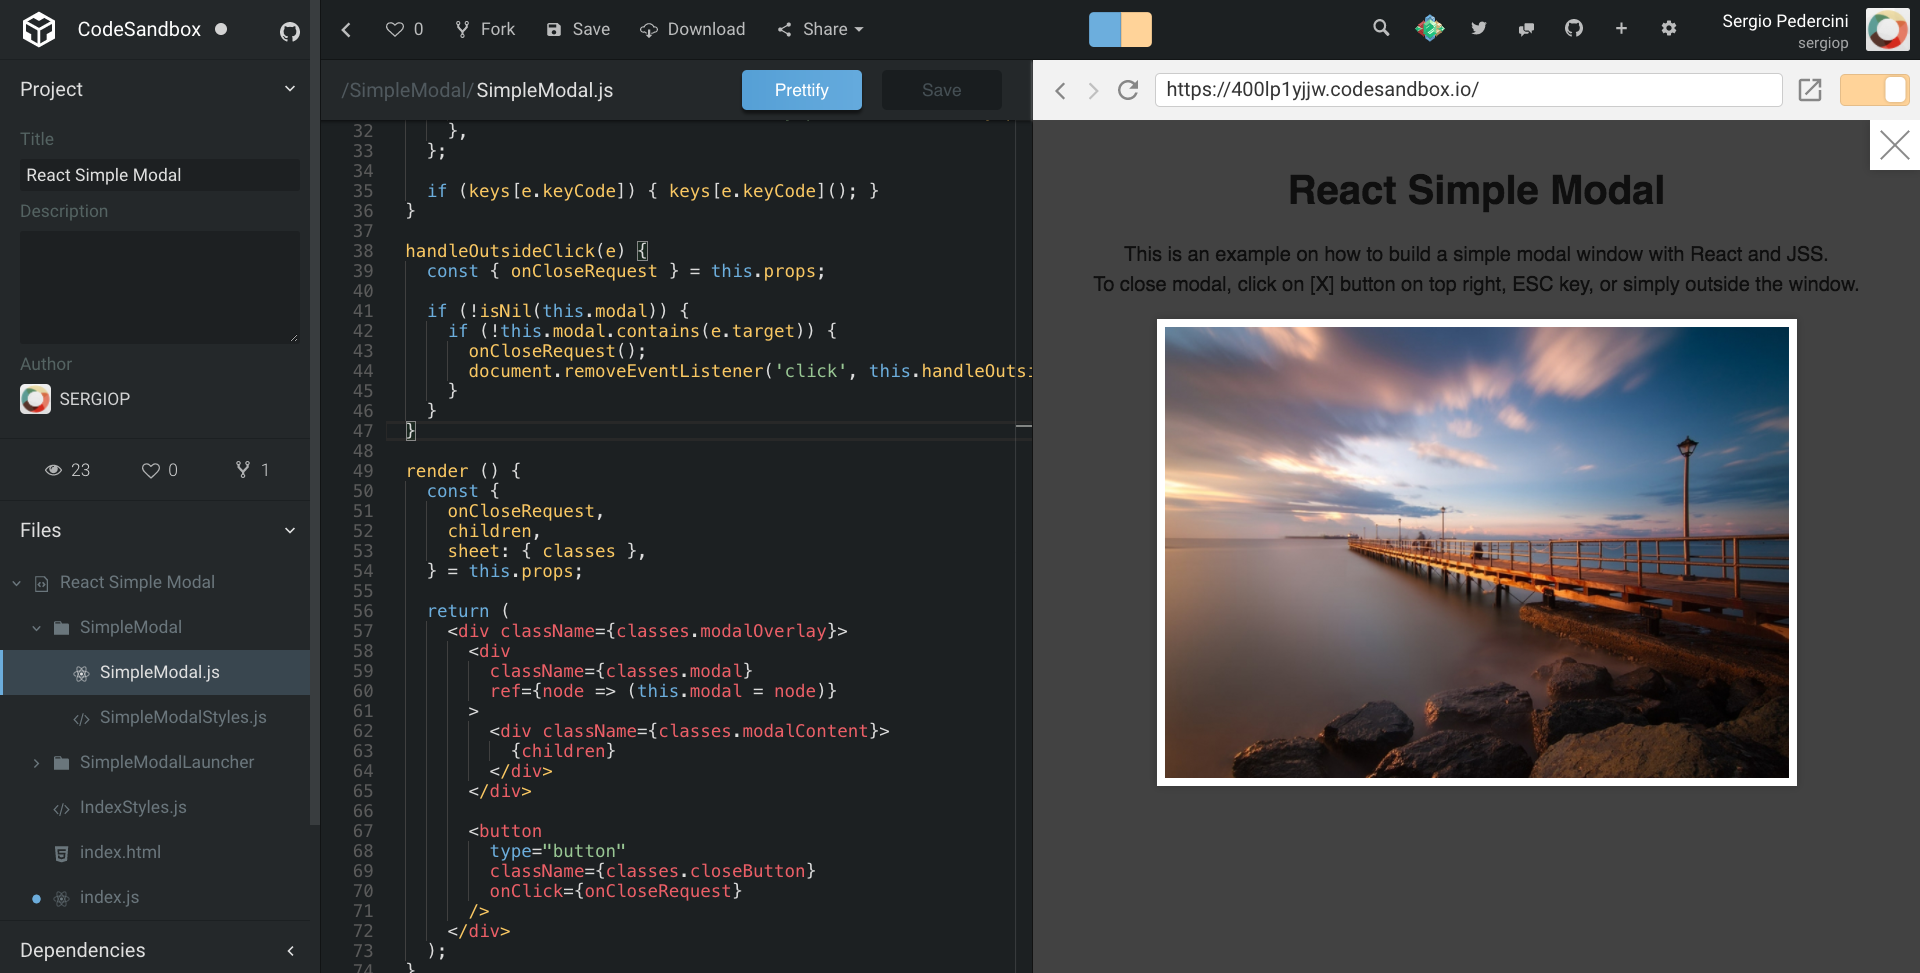 Build a simple modal window with React and JSS  - Sergio Pedercini